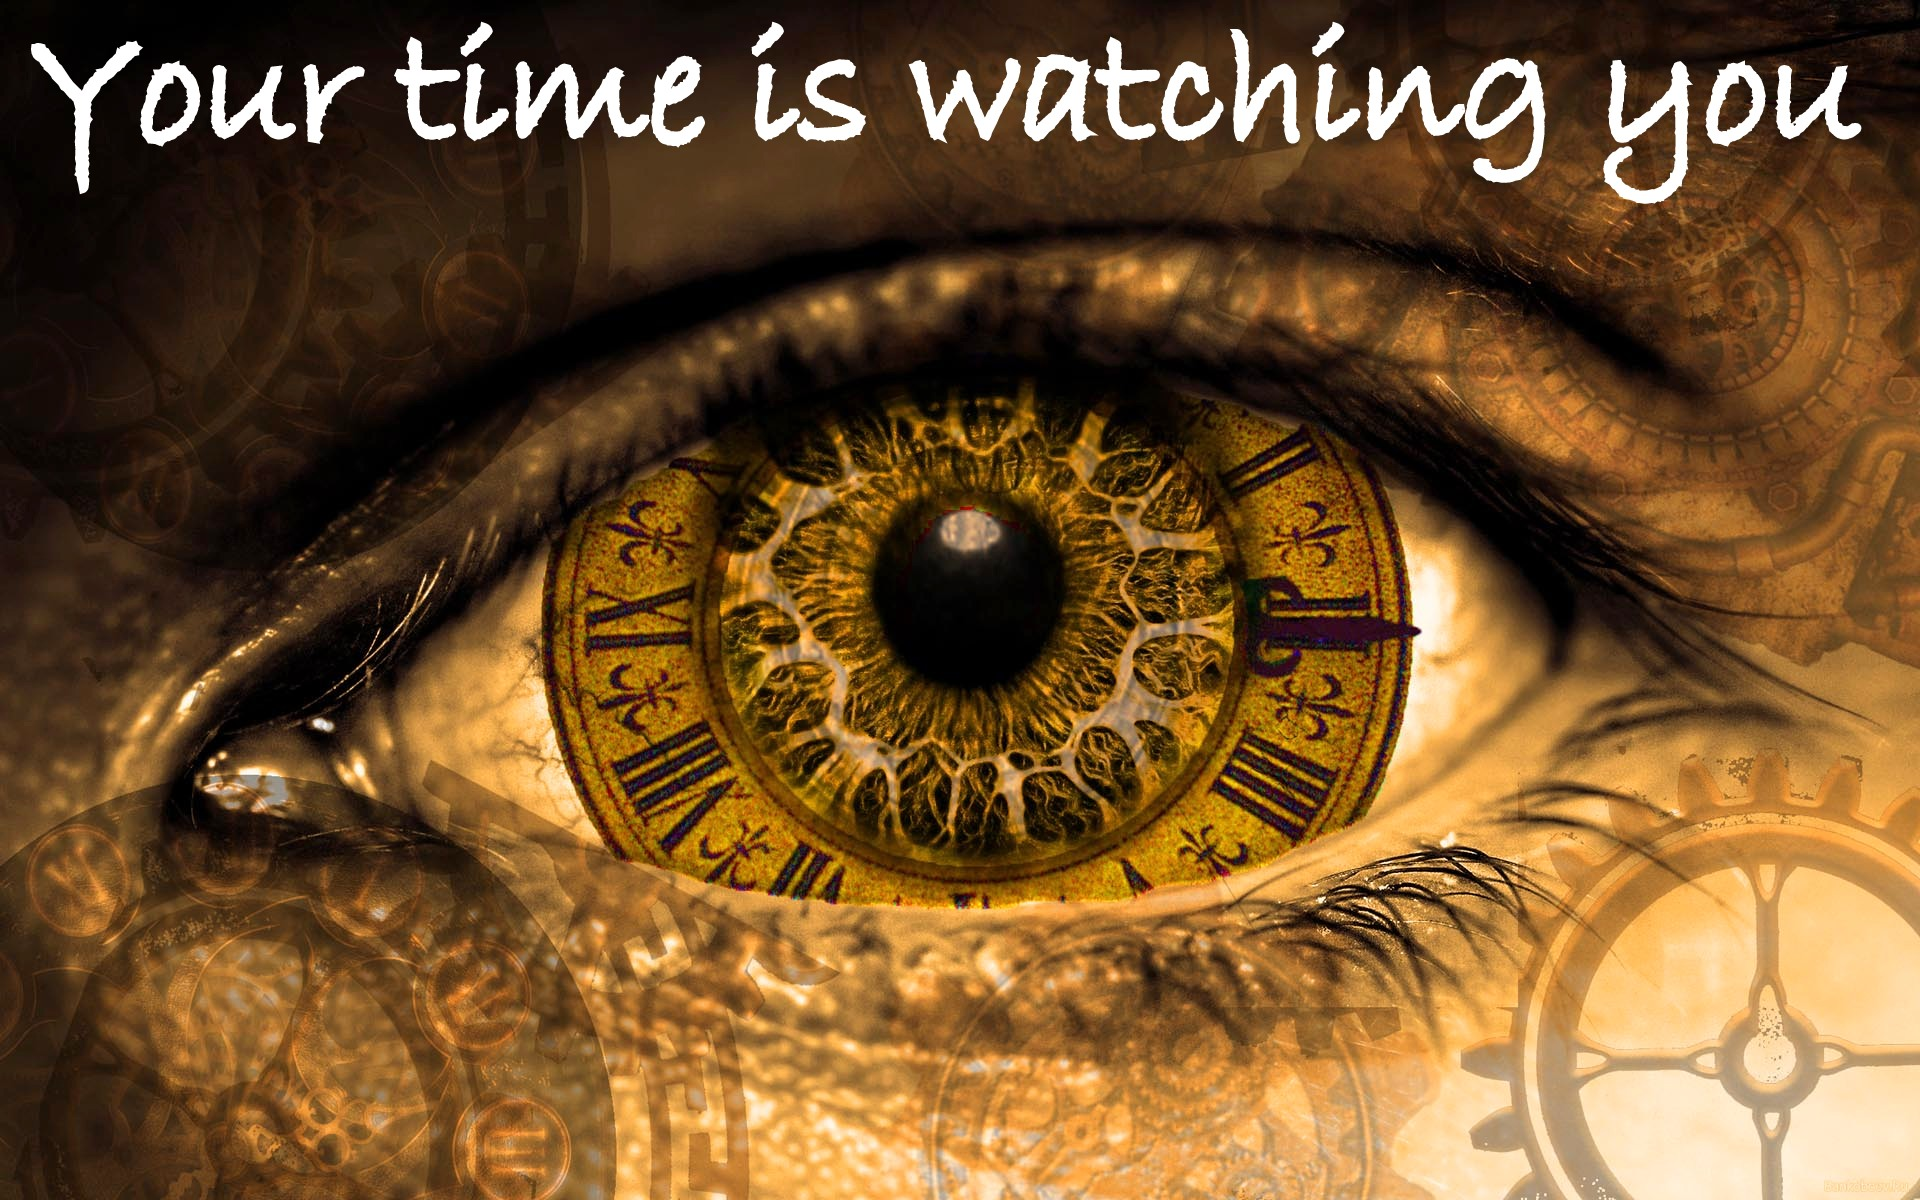 Your Time is Watching You - Time Quotes